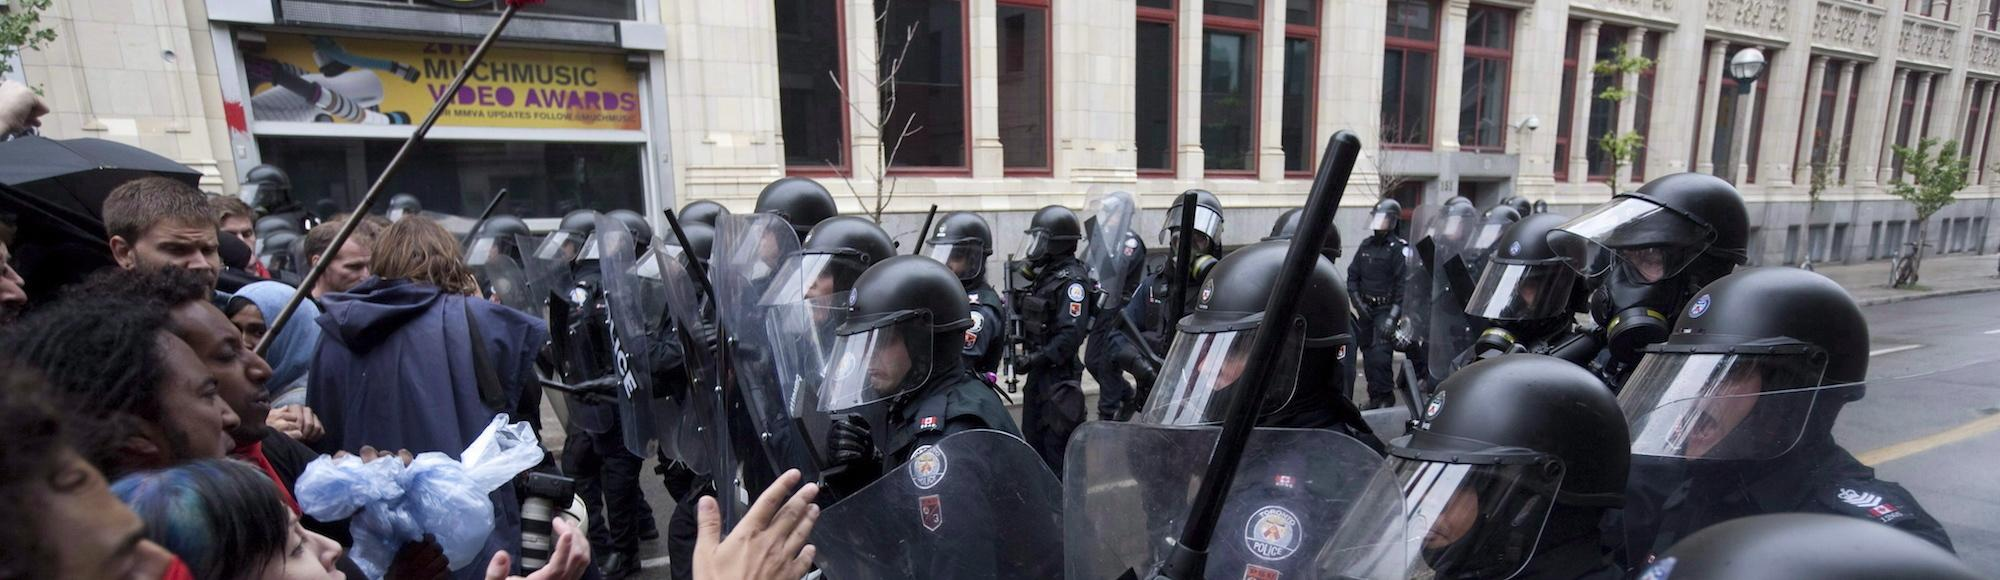 Court Rules That Hundreds of People Detained During Toronto's G20 Summit Can Sue Cops